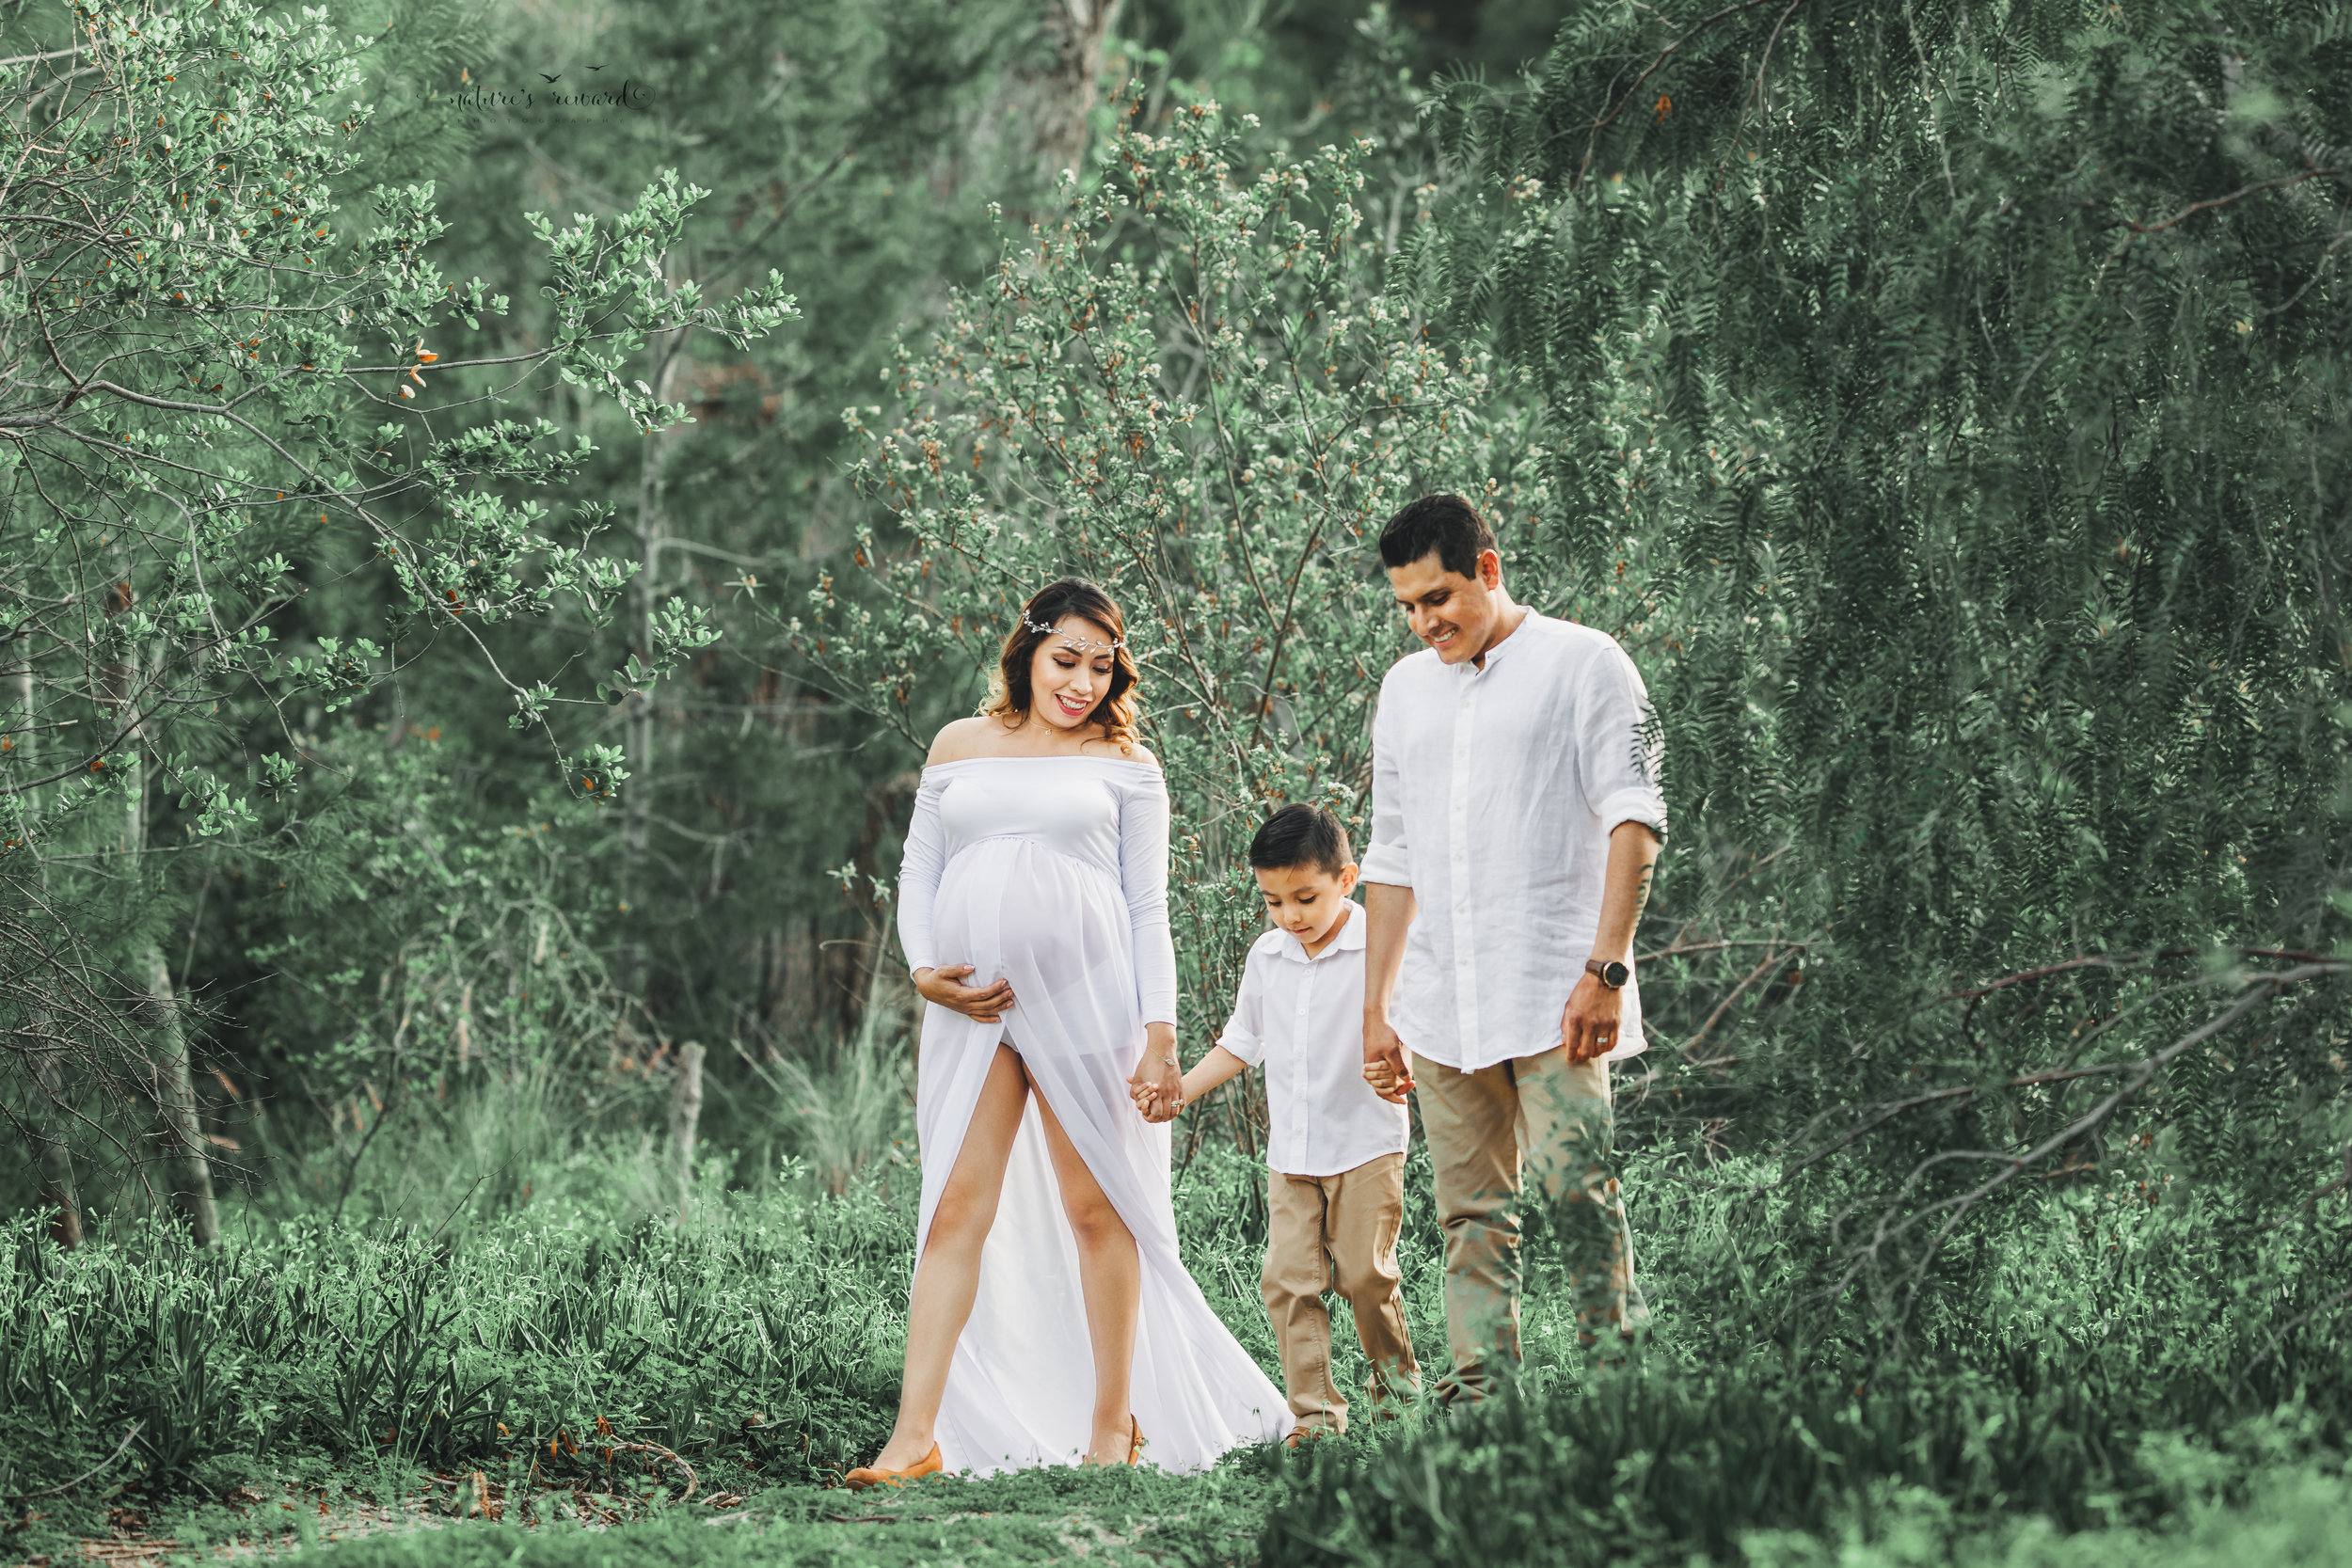 Expecting mother to be in white open front gown in this family maternity session portrait by Nature's Reward Photography